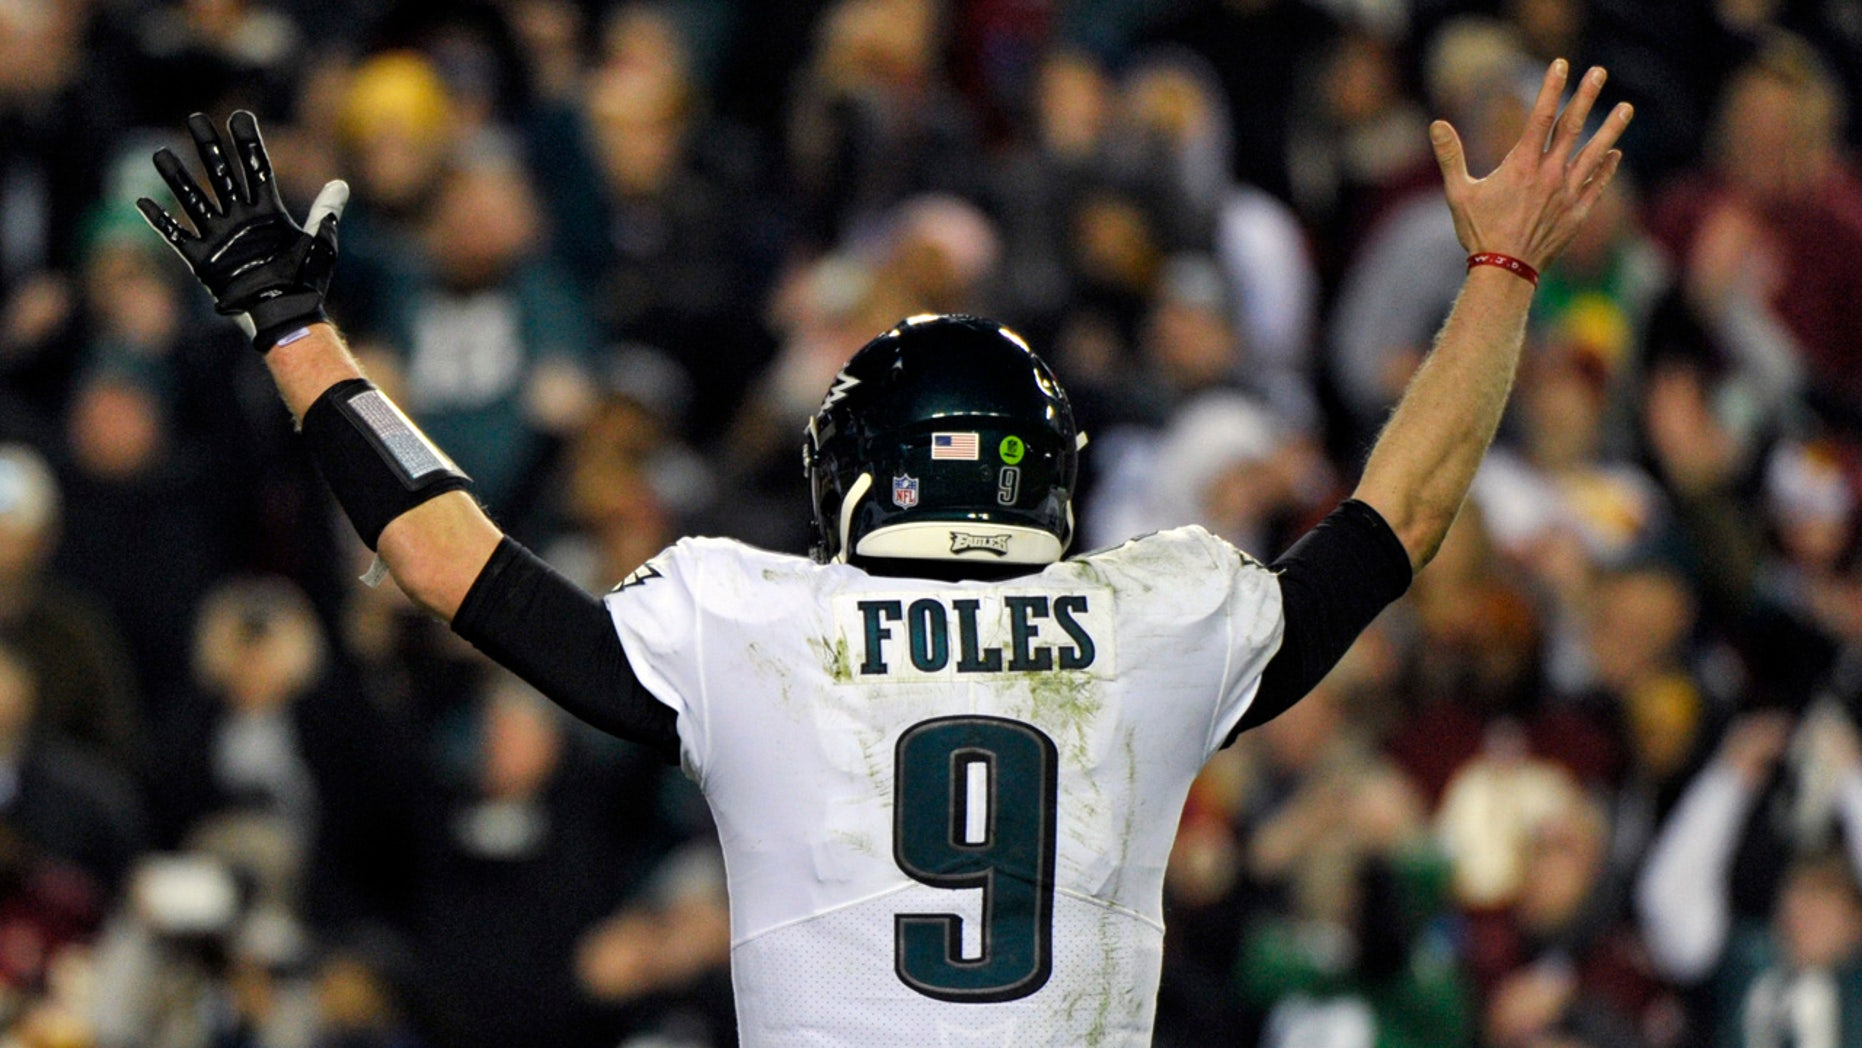 Philadelphia Eagles quarterback Nick Foles (9) reacts to wide receiver Nelson Agholor's touchdown during the second half of the NFL football game against the Washington Redskins, Sunday, Dec. 30, 2018 in Landover, Md. (AP Photo/Mark Tenally)